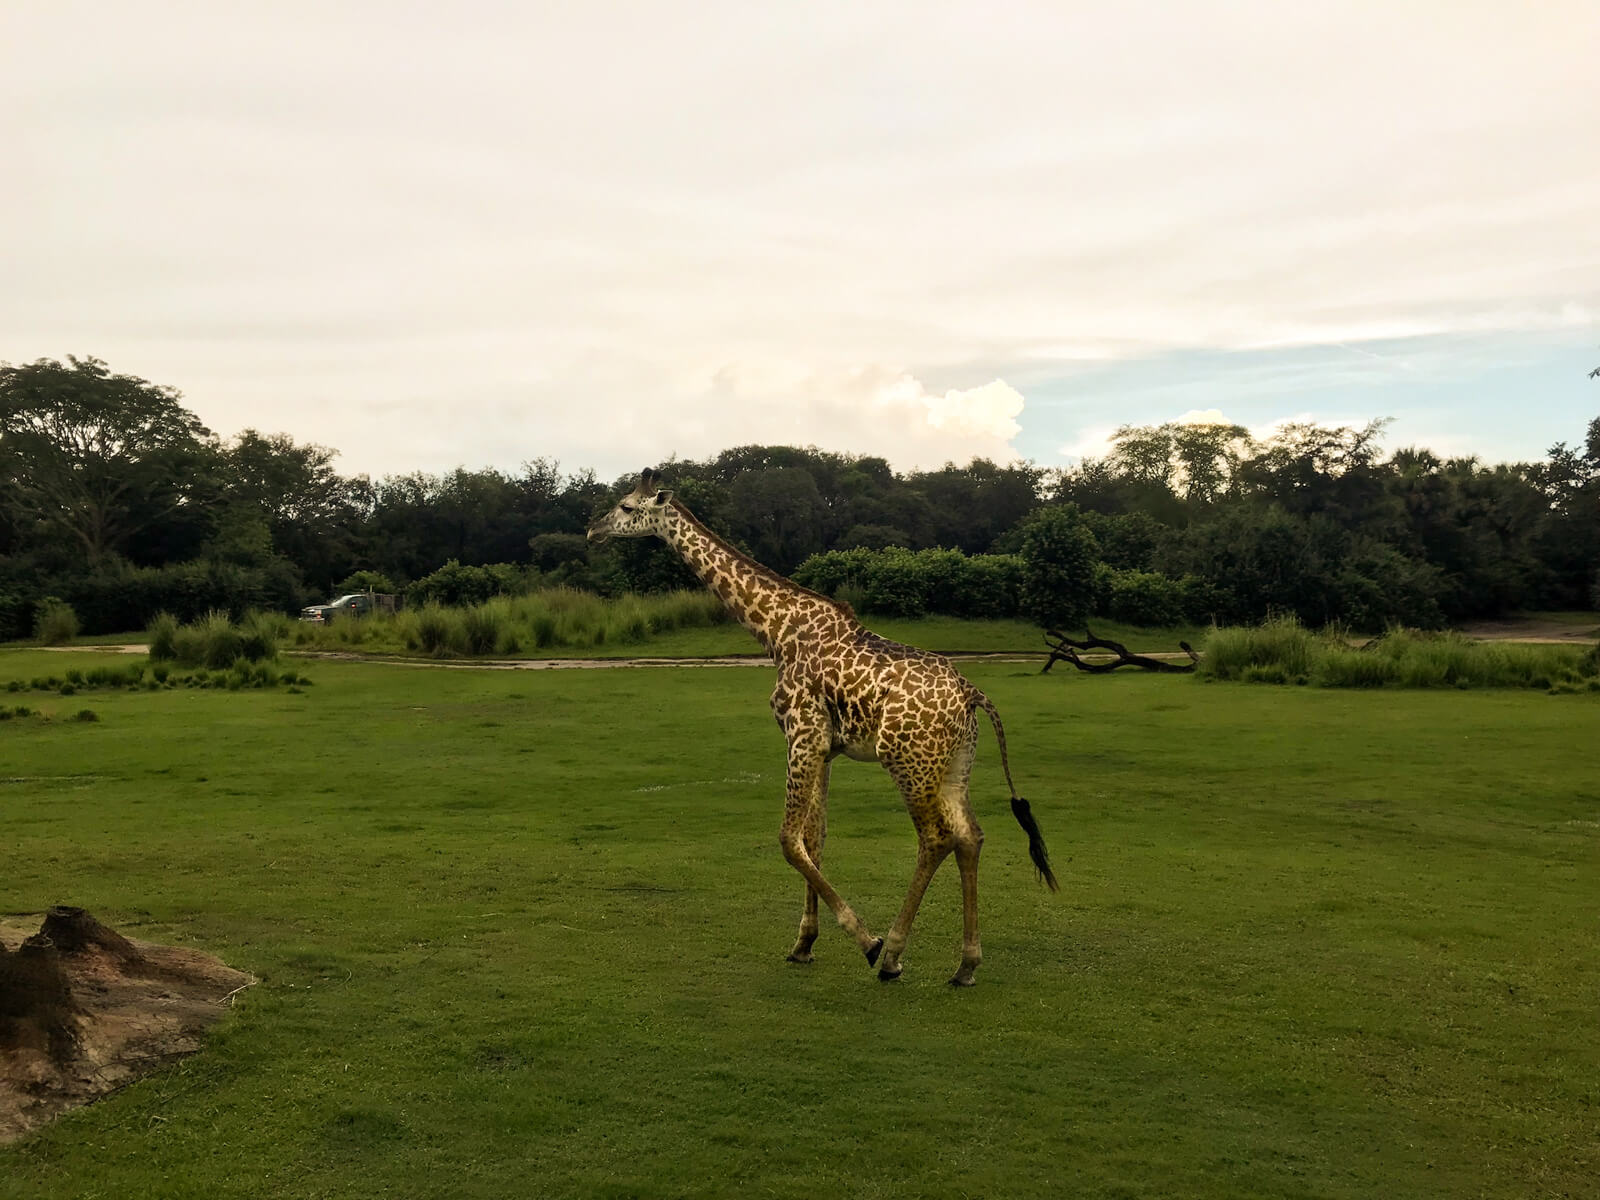 A giraffe walking across mowed green grass